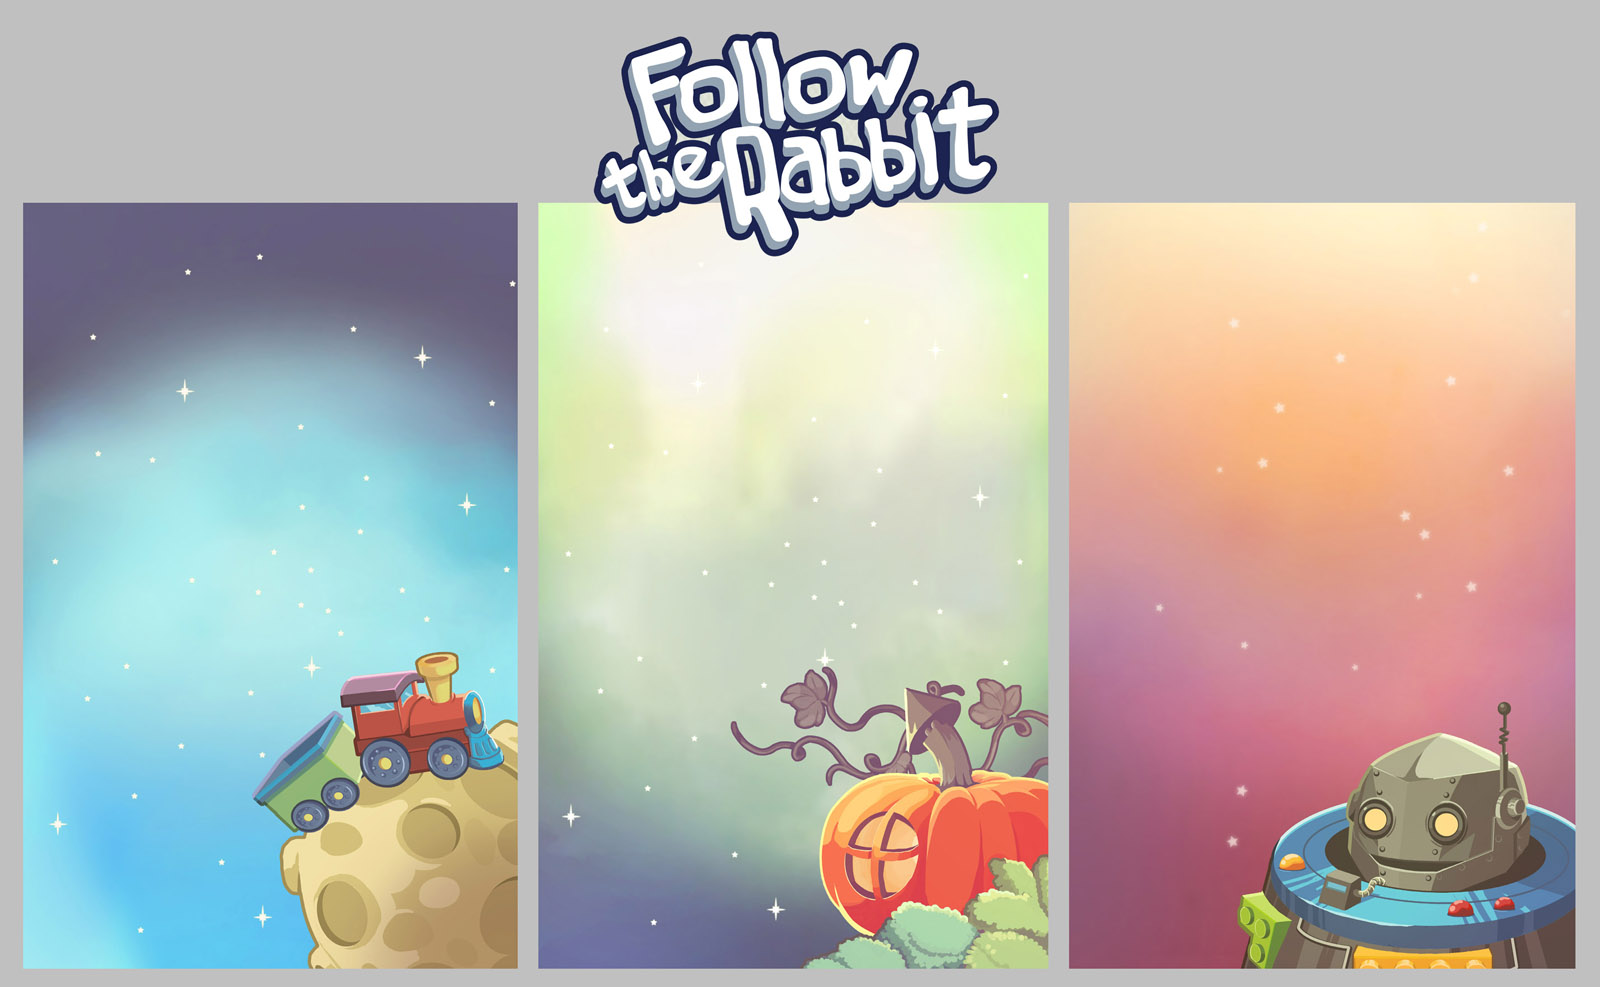 Follow the Rabbit early backgrounds by El-Andyjack